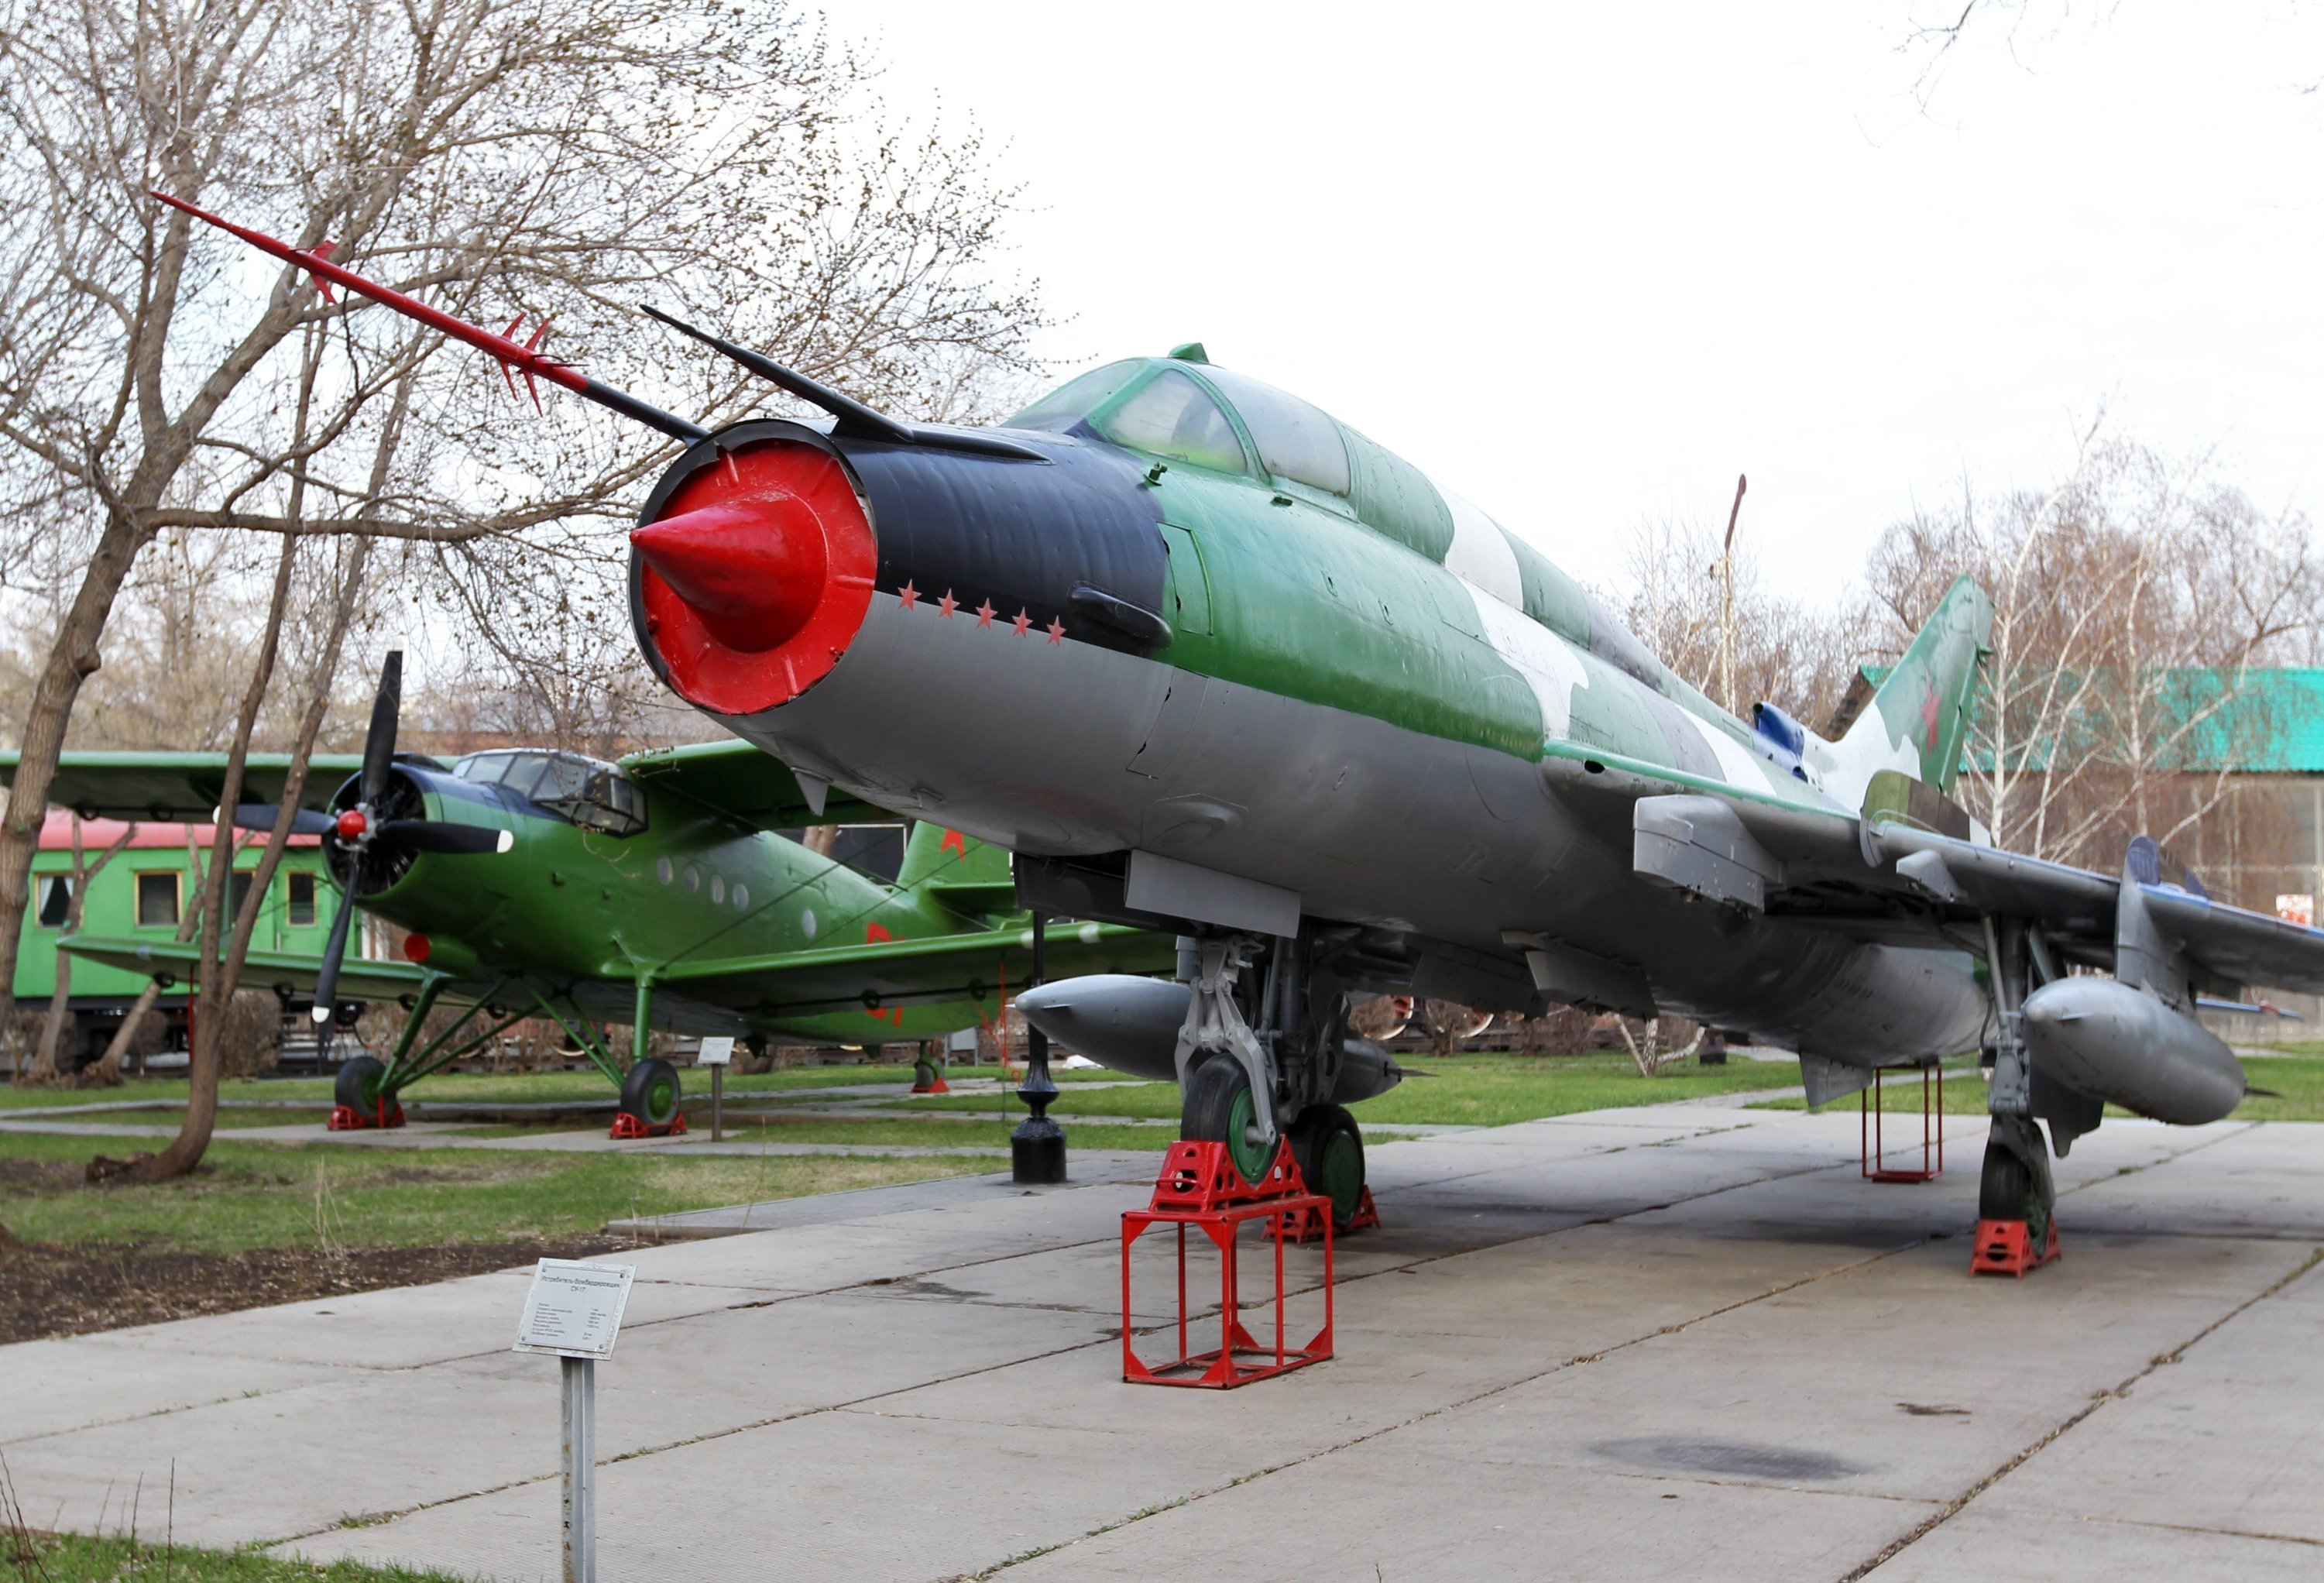 A Su-17 figter plane (in the foreground) at the Victory Park in Orenburg, Russia.